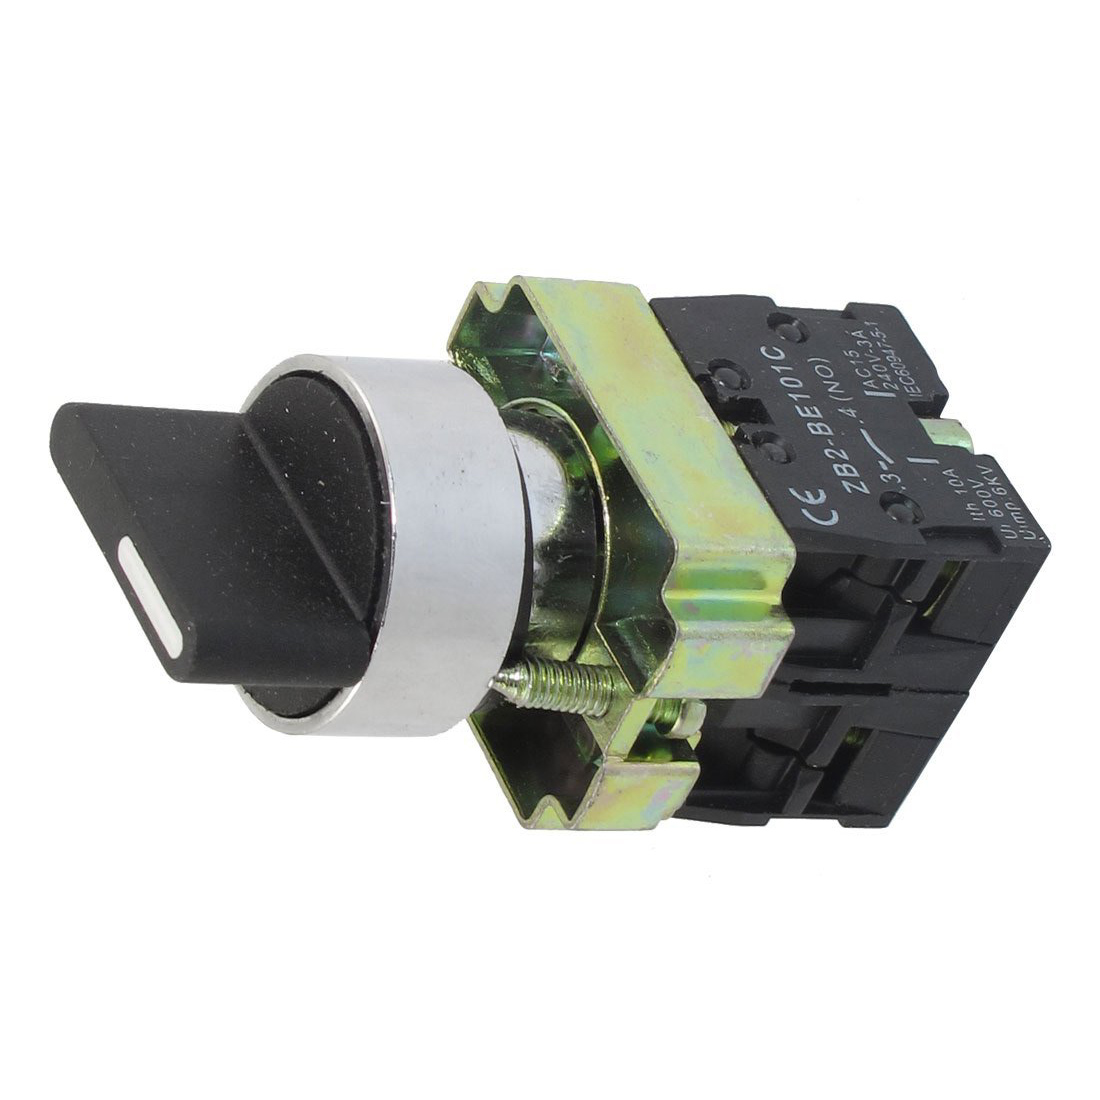 22mm latching 2 no 3 position rotary selector select for 3 com switch